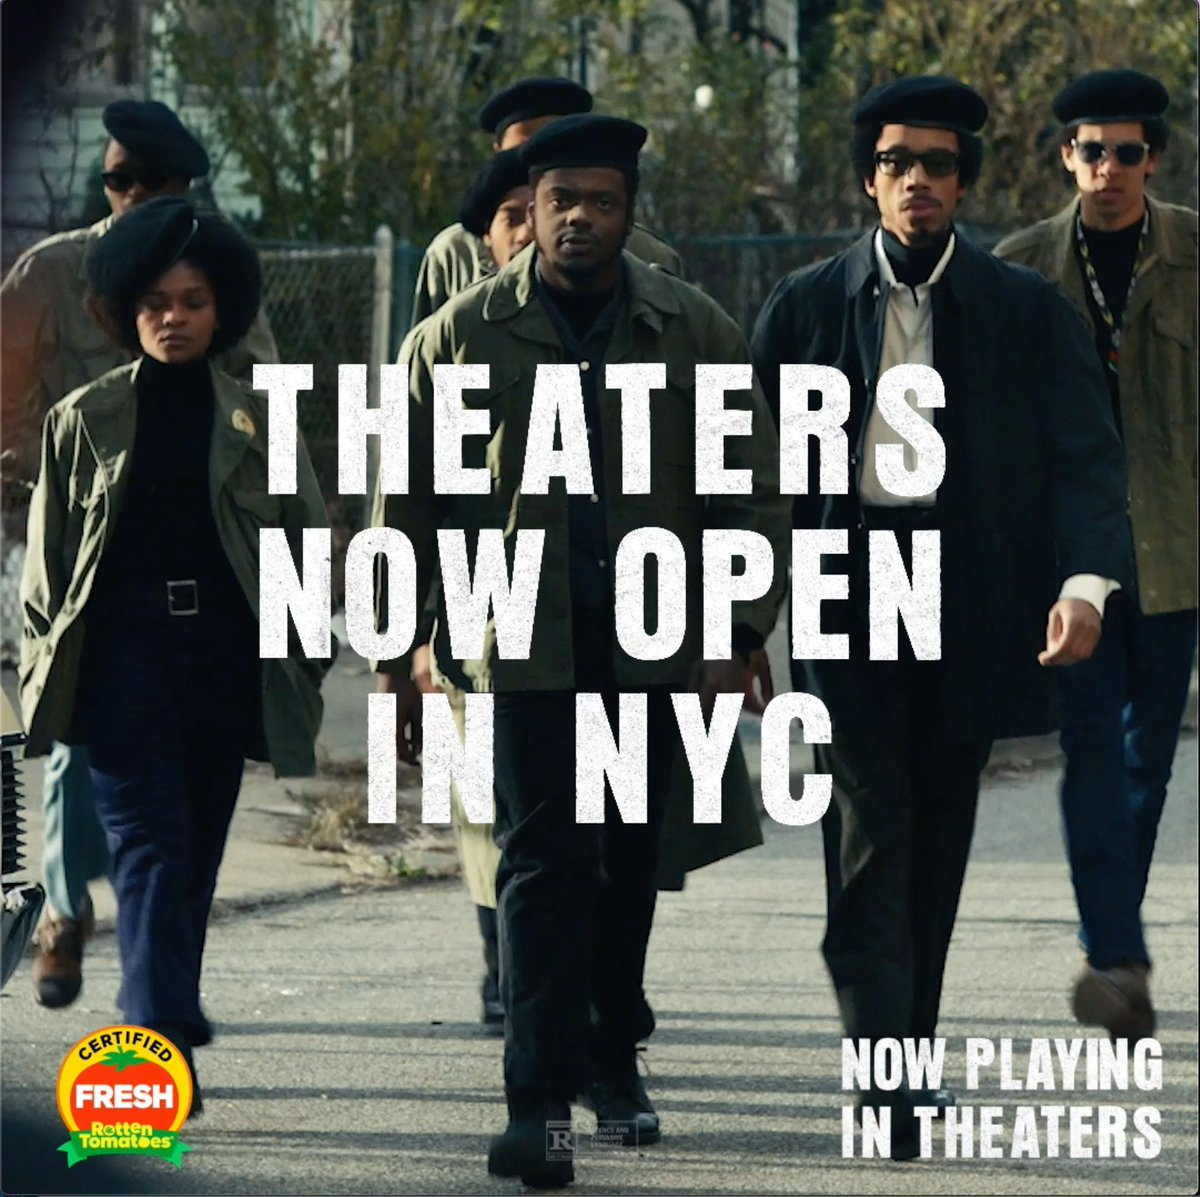 Big movies are back in NYC. Get tickets for #JudasAndTheBlackMessiah - now playing in theaters: judasandtheblackmessiah.com